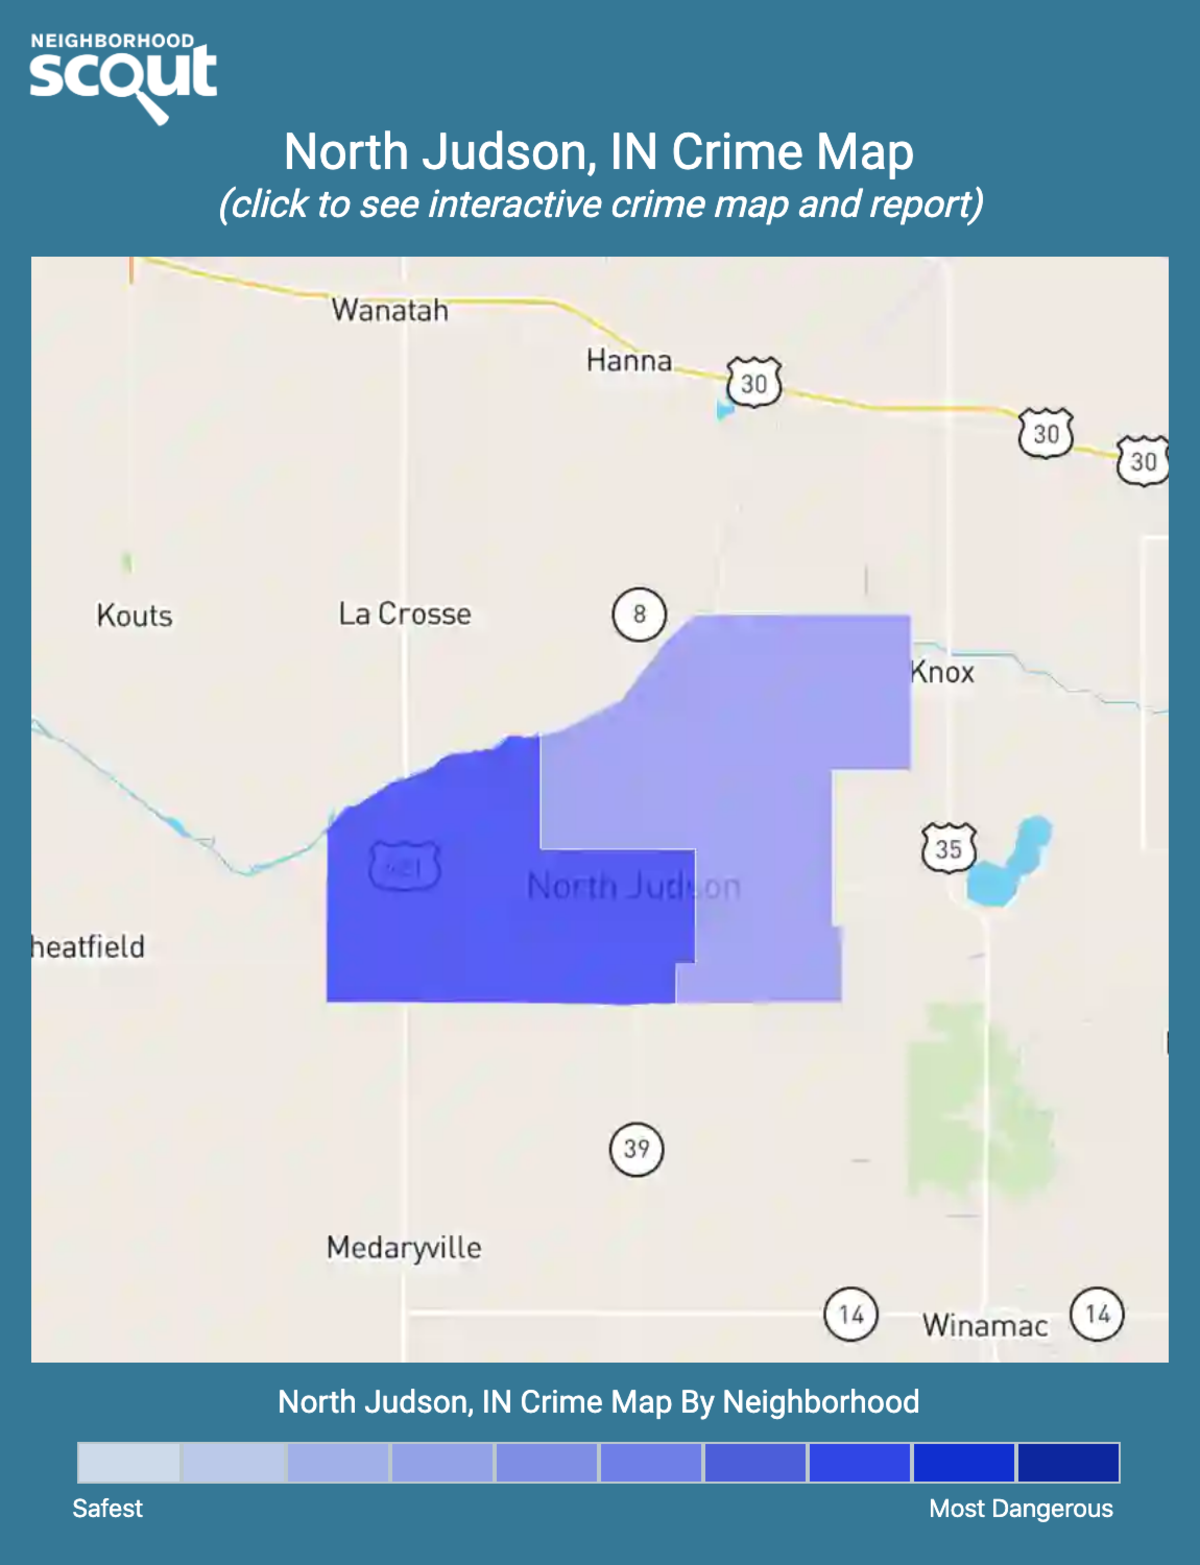 North Judson, Indiana crime map